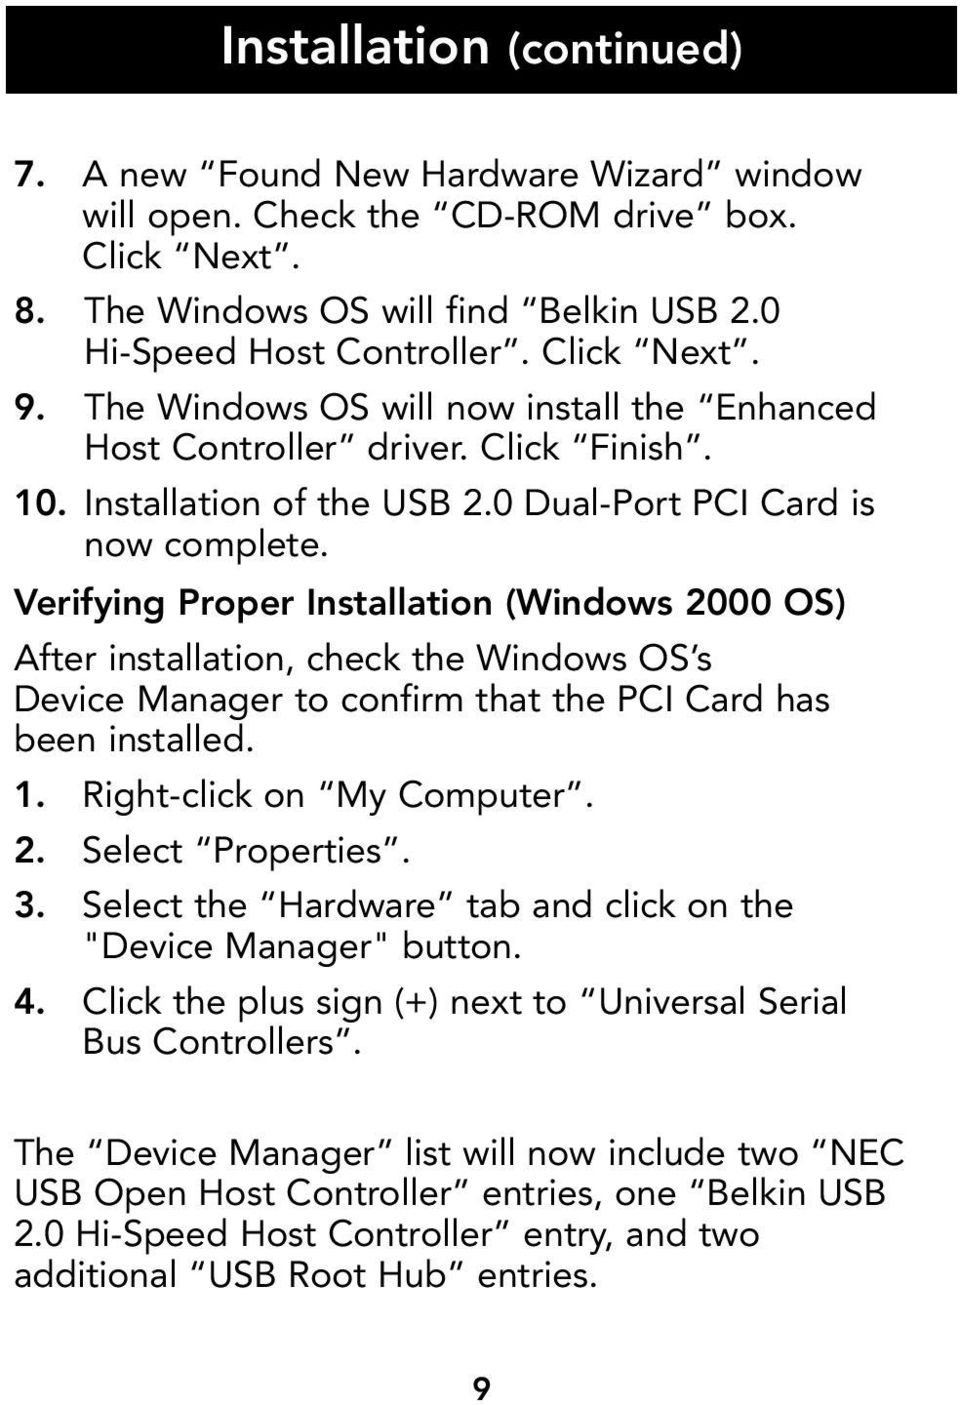 Verifying Proper Installation (Windows 2000 OS) After installation, check the Windows OS s Device Manager to confirm that the PCI Card has been installed. 1. Right-click on My Computer. 2. Select Properties.